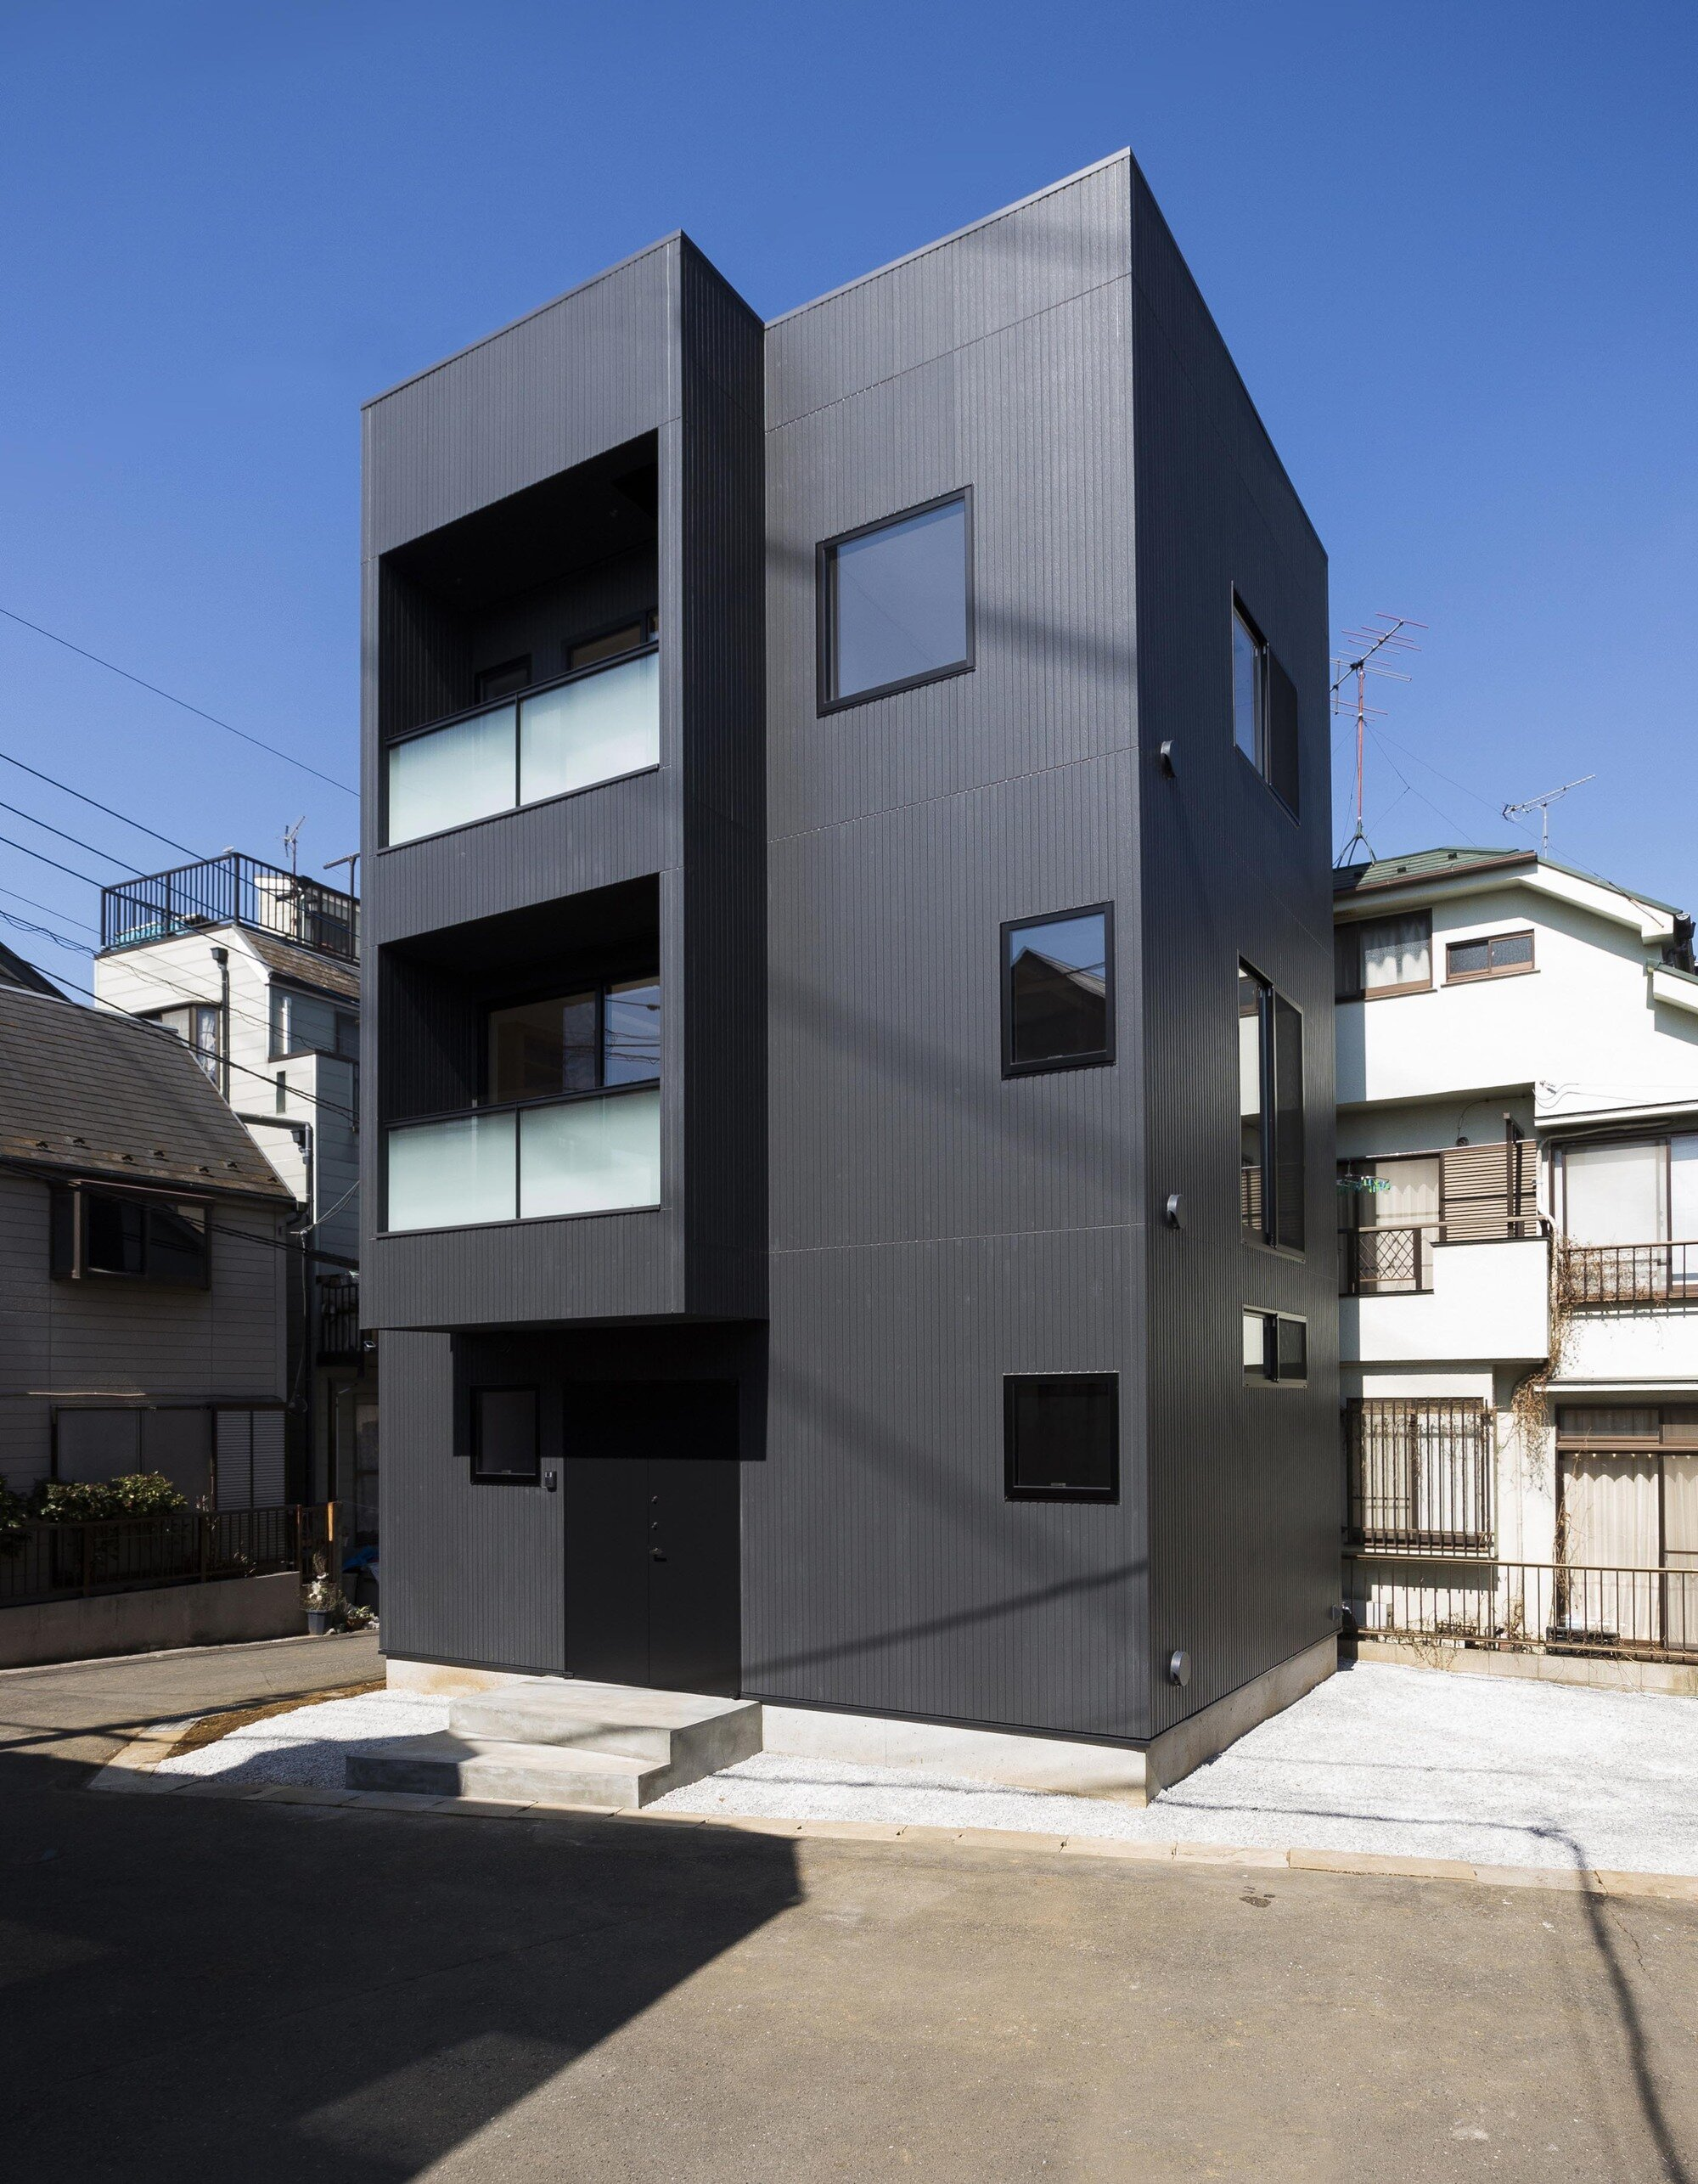 Hibarigaoka S House   Small Japanese House   Kaida Architecture Design  Office   Japan   Exterior